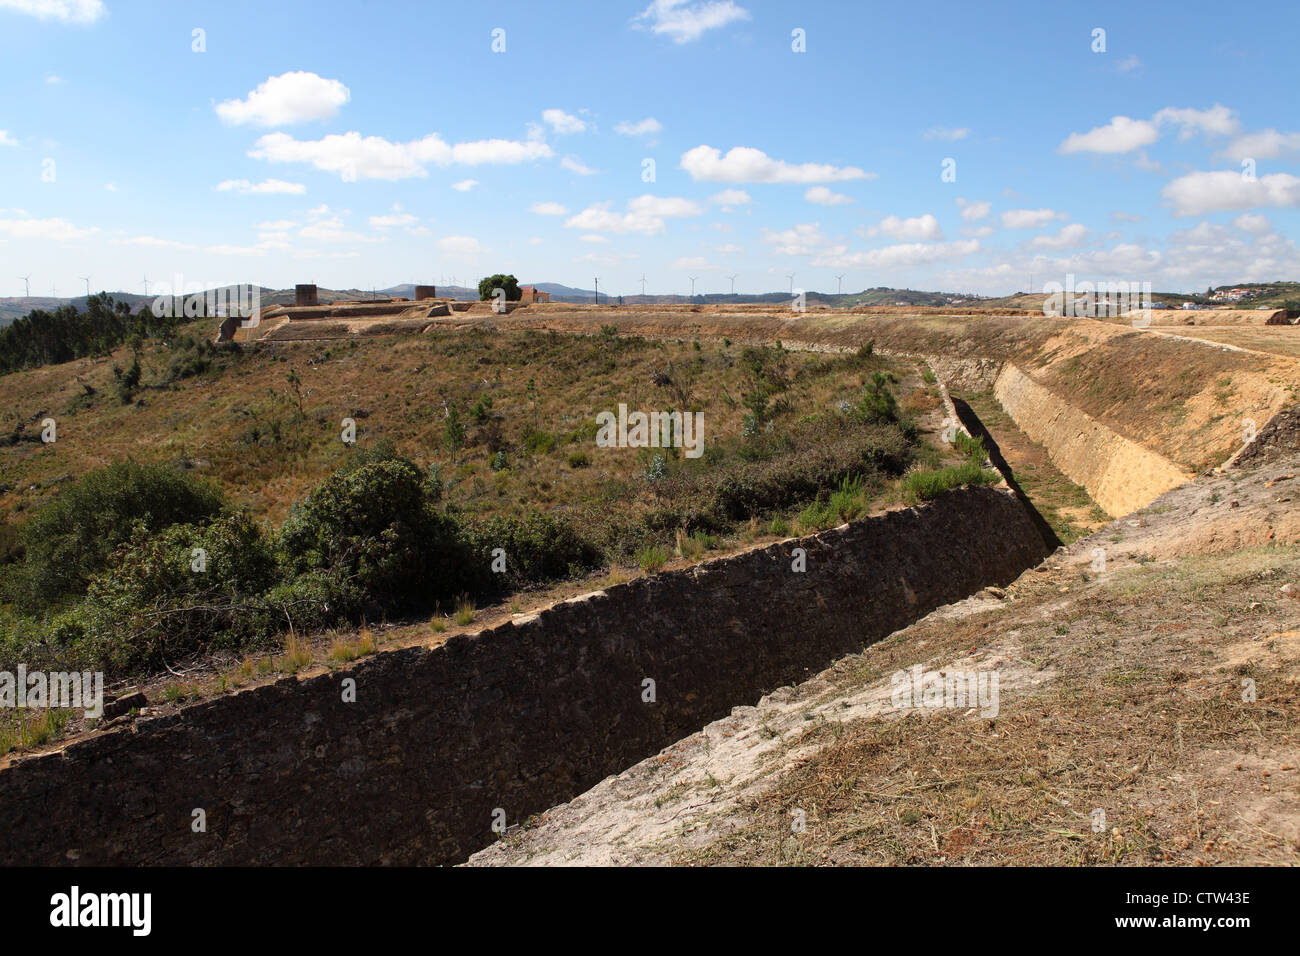 Defensive ditch at Forte de Sao Vicente, one the Lines of Torres Vedras, Portugal. - Stock Image